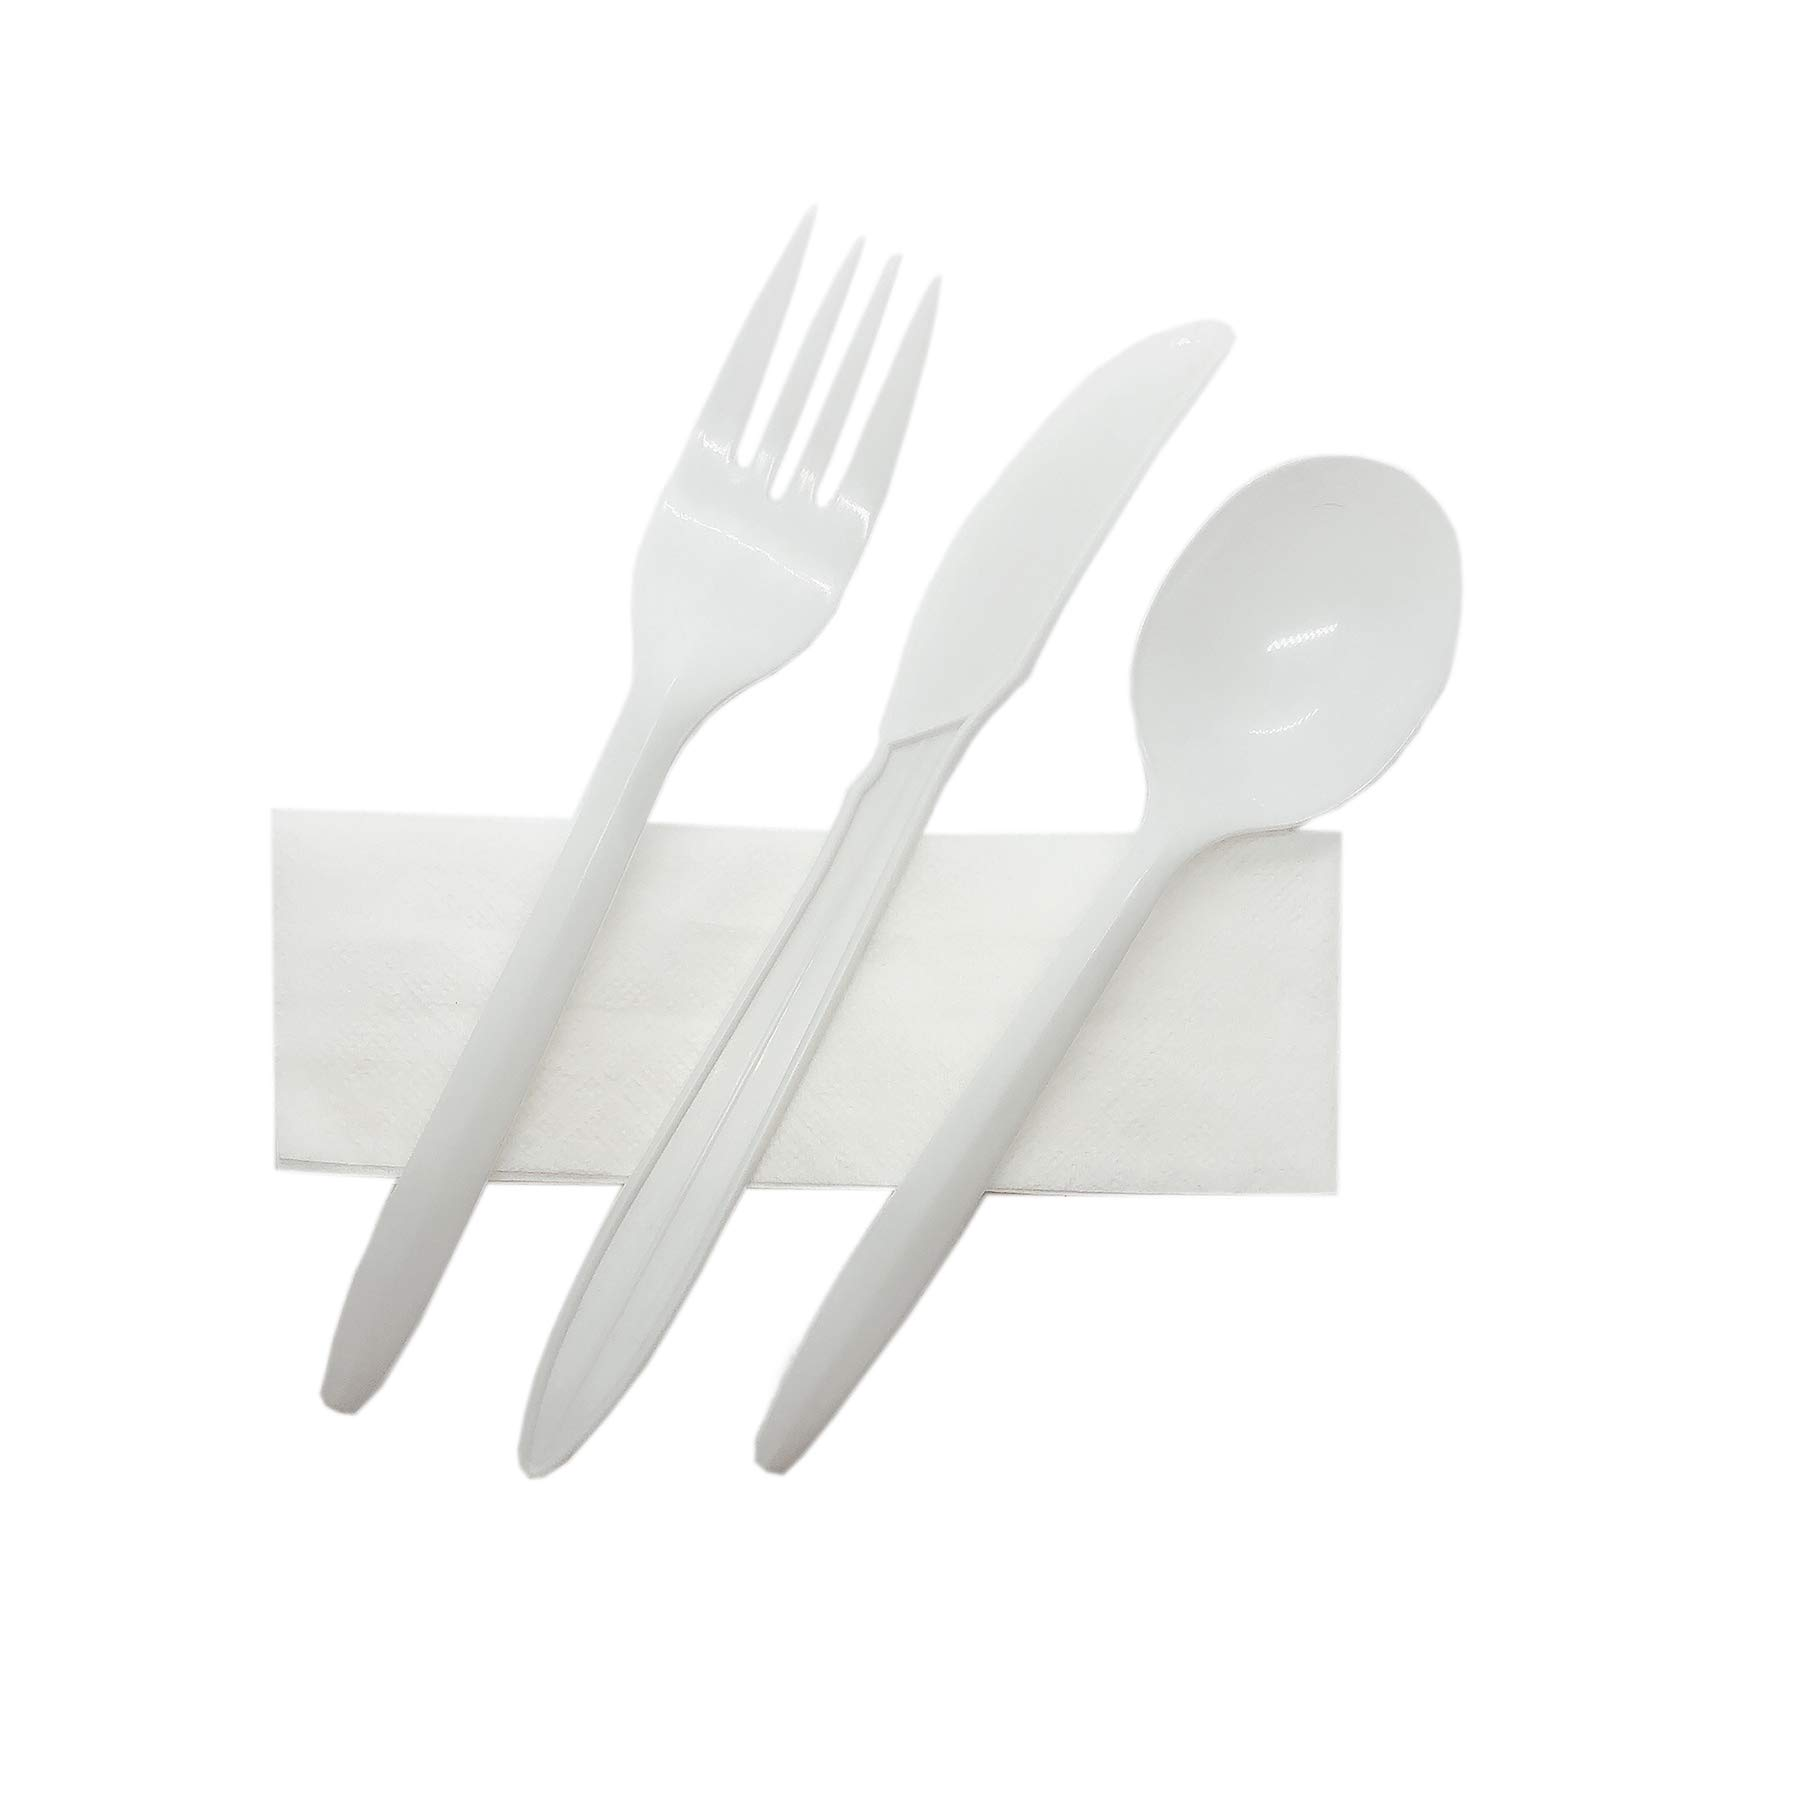 R Noble 80 Plastic Silverware Set with Napkins, Individually Wrapped, Disposable Silverware Set, Cutlery Kit, Medium Weight, 80 Napkins, 80 Plastic Forks, 80 Plastic Spoons, 80 Plastic Knives by R Noble